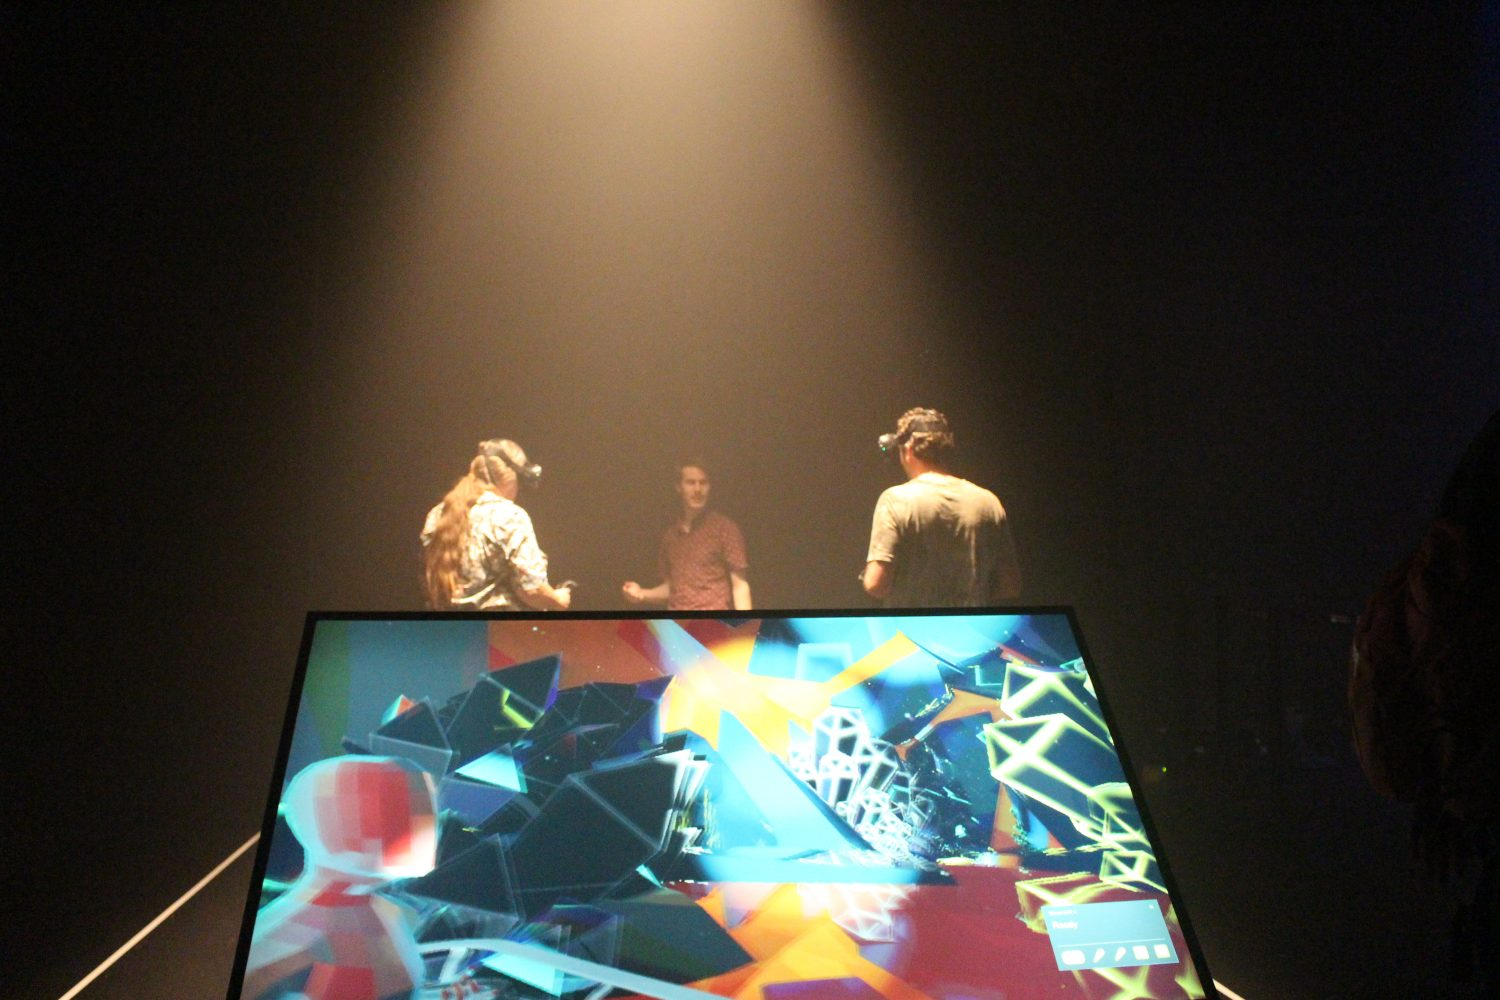 Colliding Dimensions in use by 2 men with a screen in front displaying what is happening in virtual reality